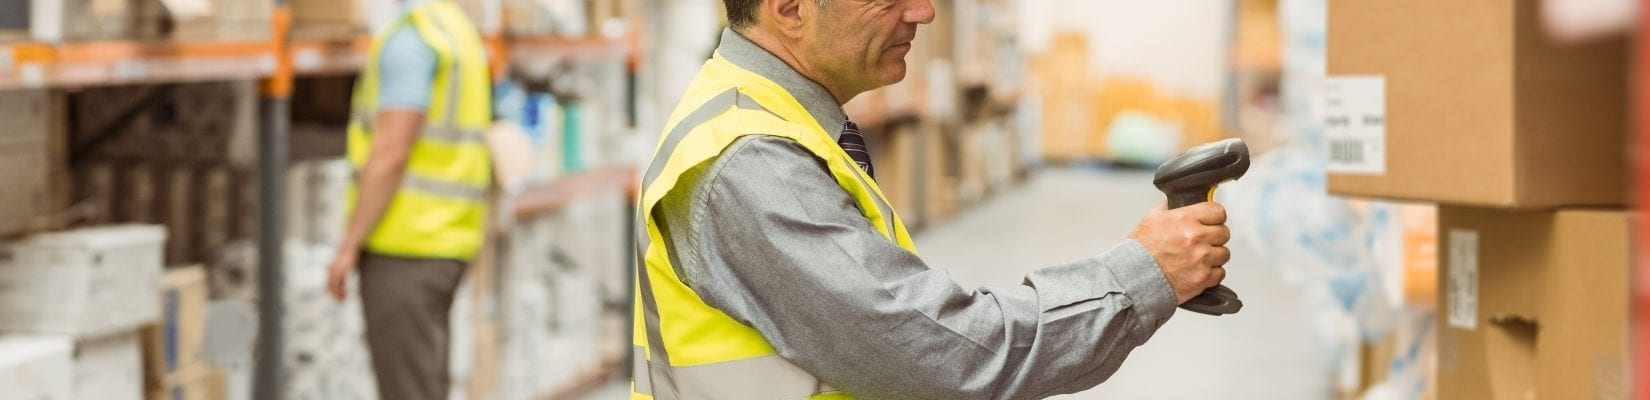 Barcoding & Warehousing Help and User Guide